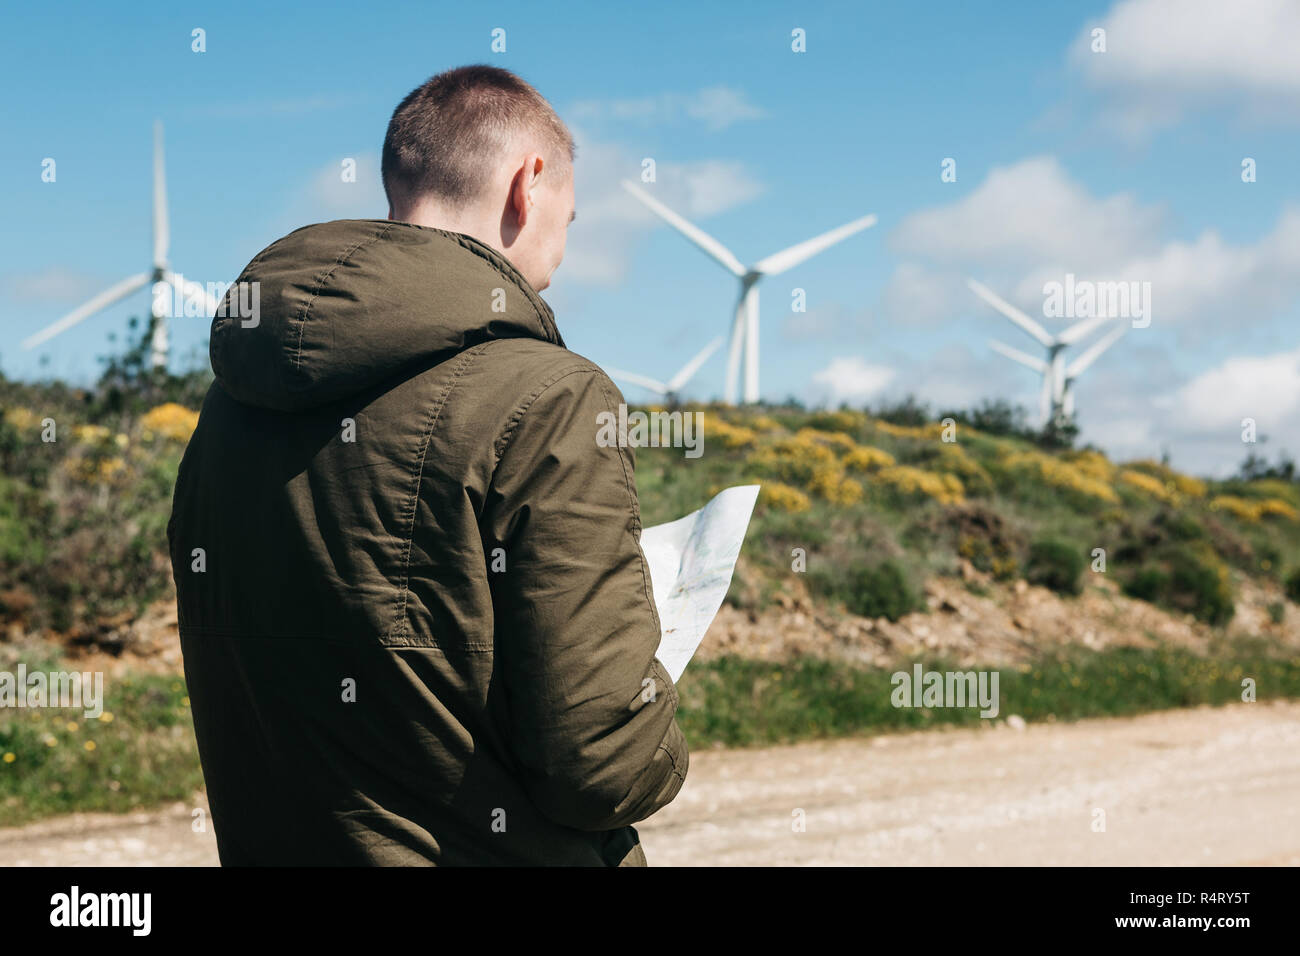 A tourist man looks at the map of the area for further travel. Unknown terrain or unfamiliar territory or path. - Stock Image